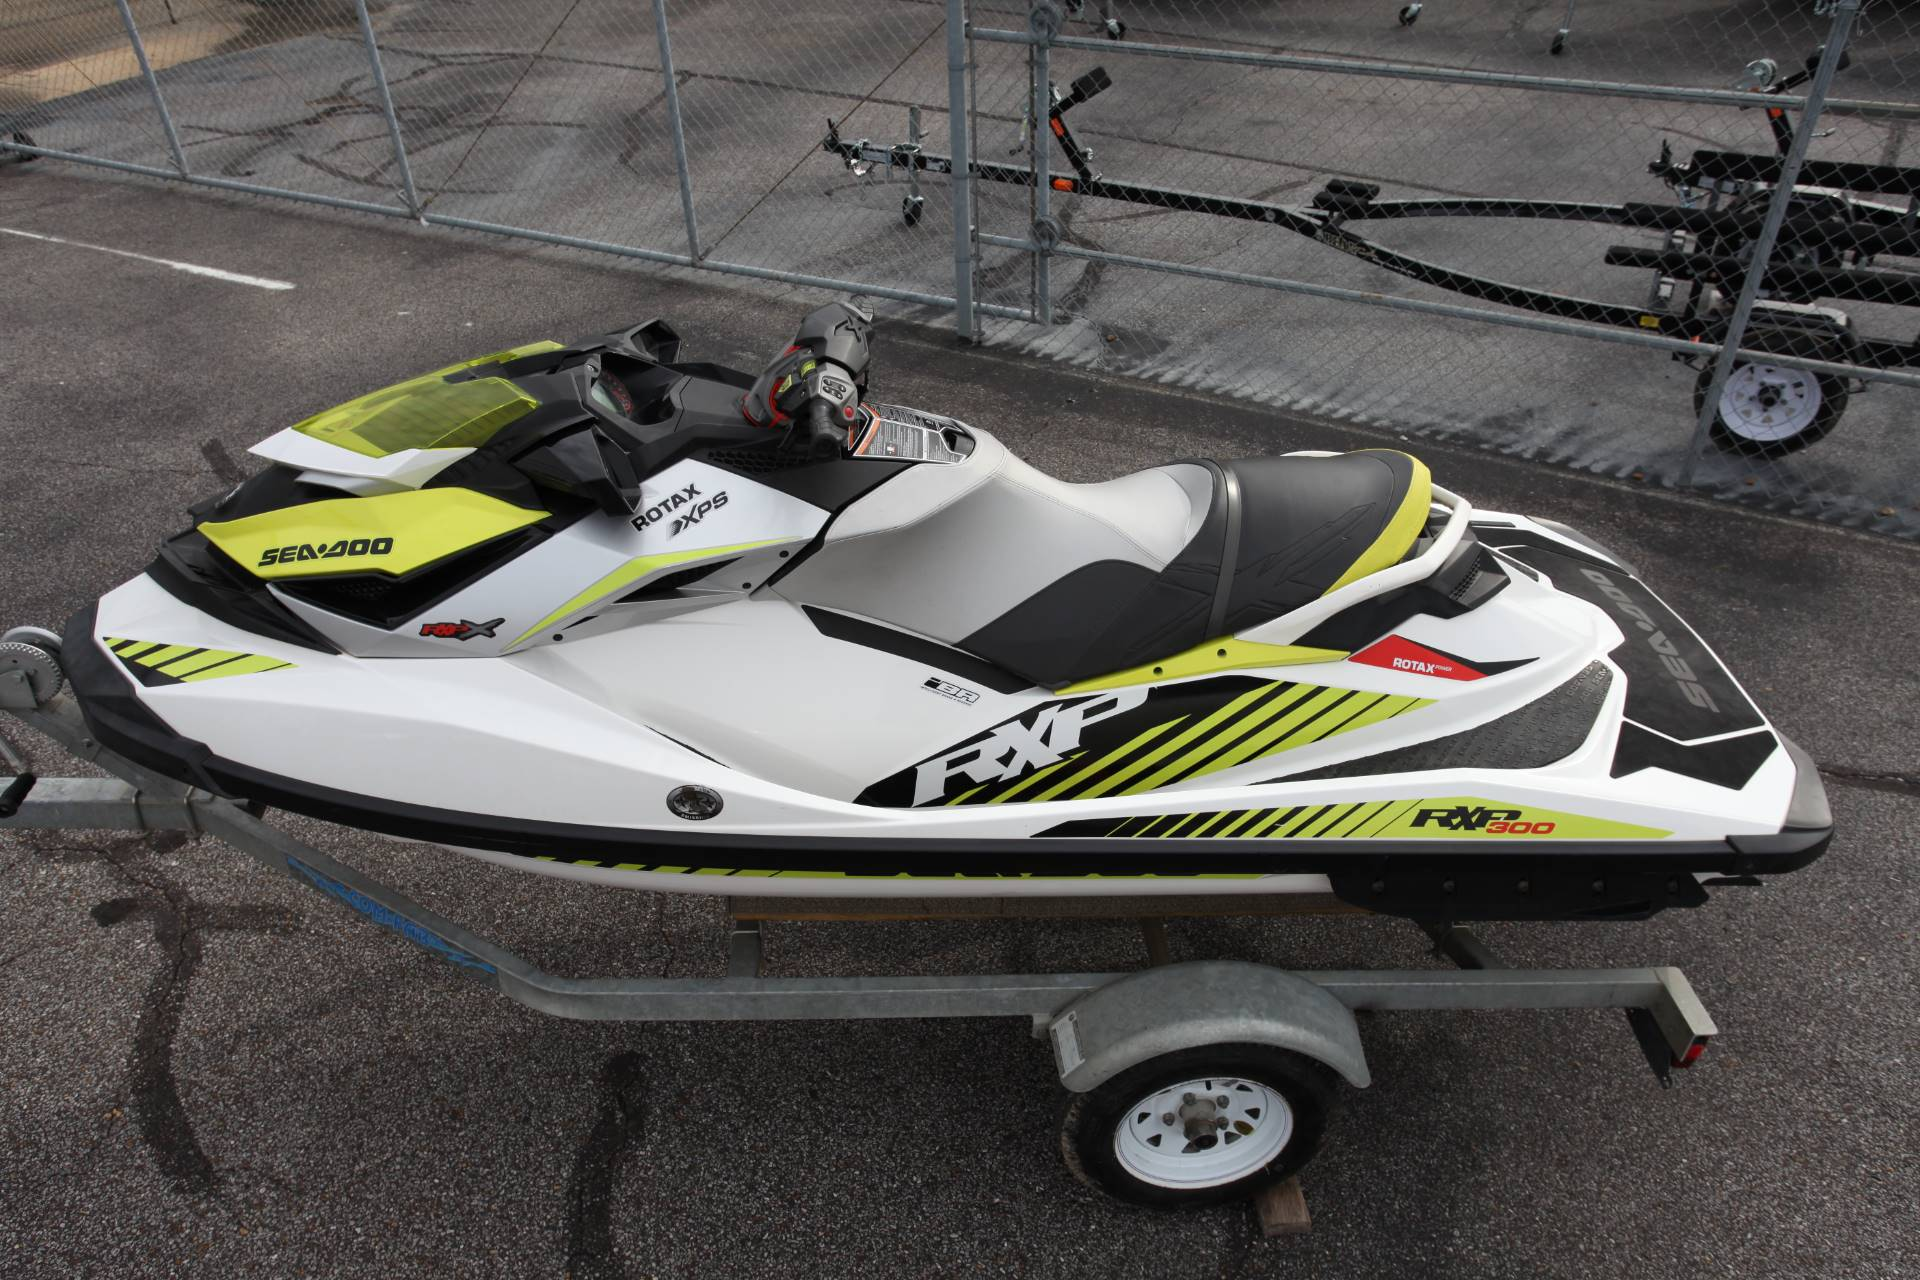 2017 Sea-Doo RXP-X 300 in Memphis, Tennessee - Photo 7